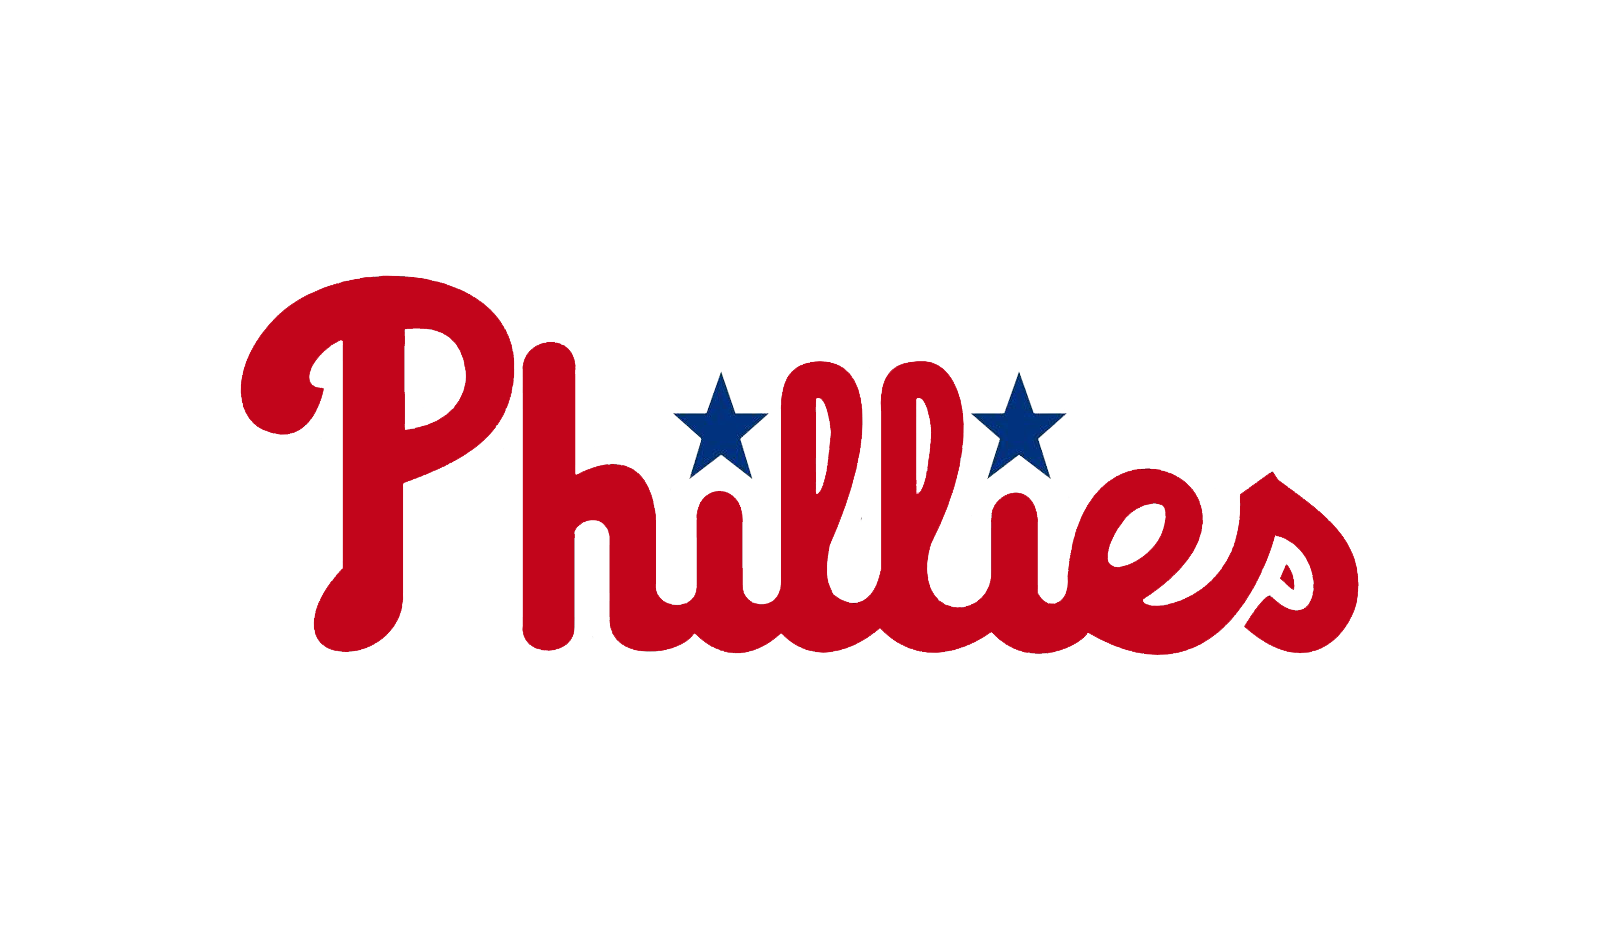 philadelphia phillies logo png transparent svg vector freebie supply rh freebiesupply com Philies No Back Ground Clip Art Philies No Back Ground Clip Art